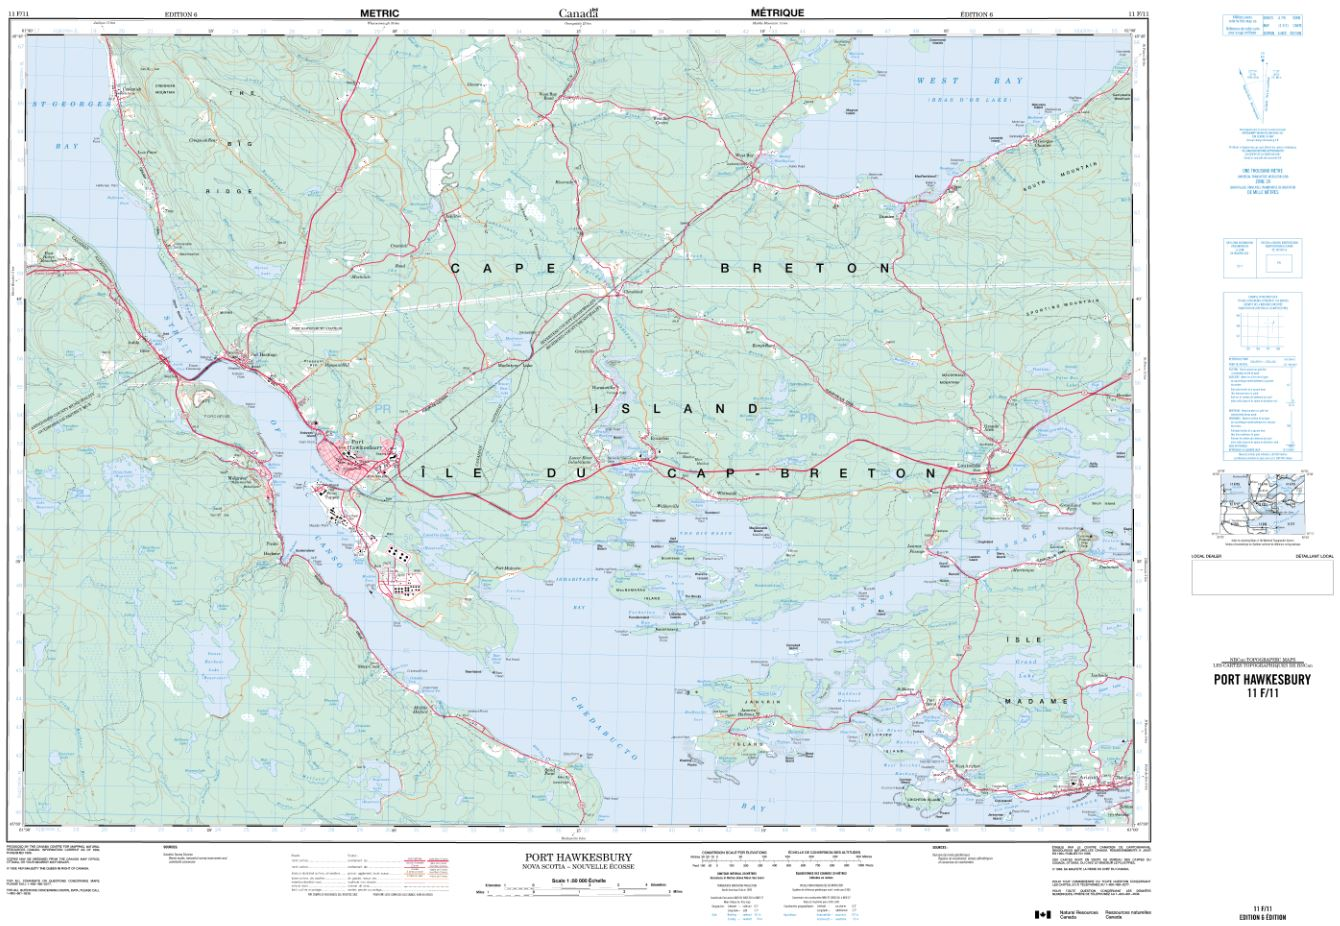 11F/11 Port Hawkesbury Topographic Map Nova Scotia Tyvek